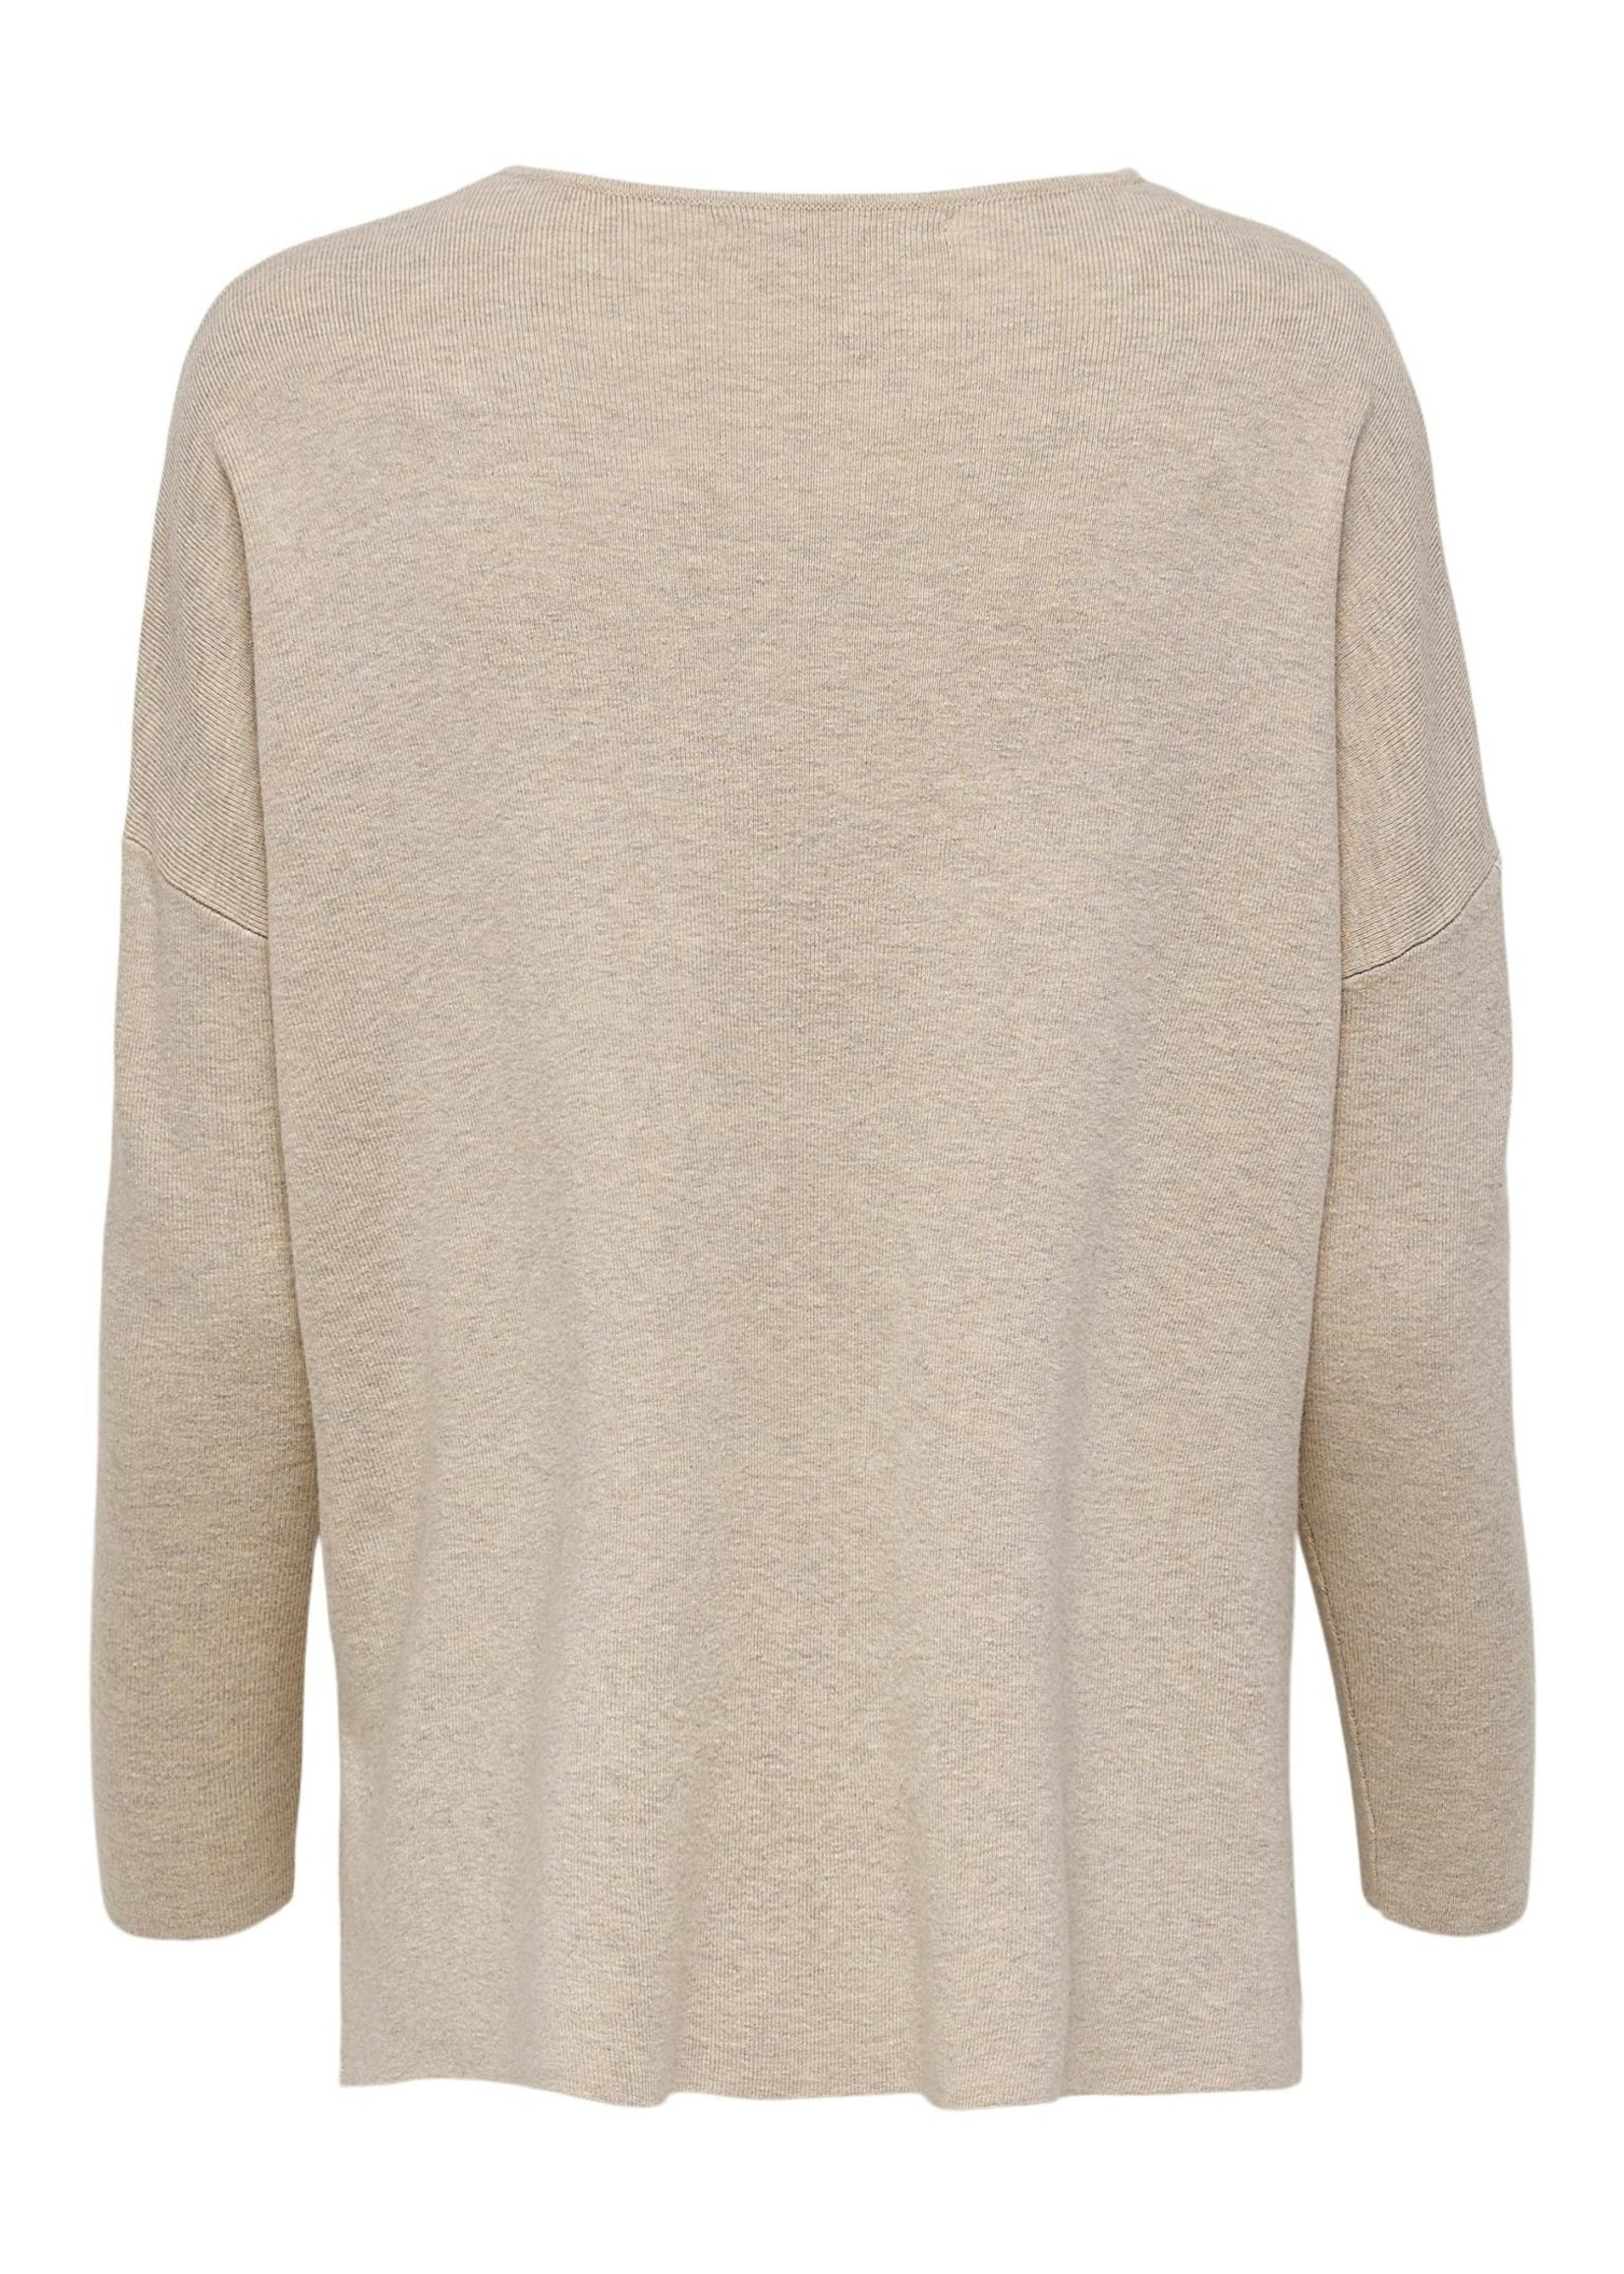 ONLY AUGUSTA L/S V-NECK PULLOVER KNT pumice stone